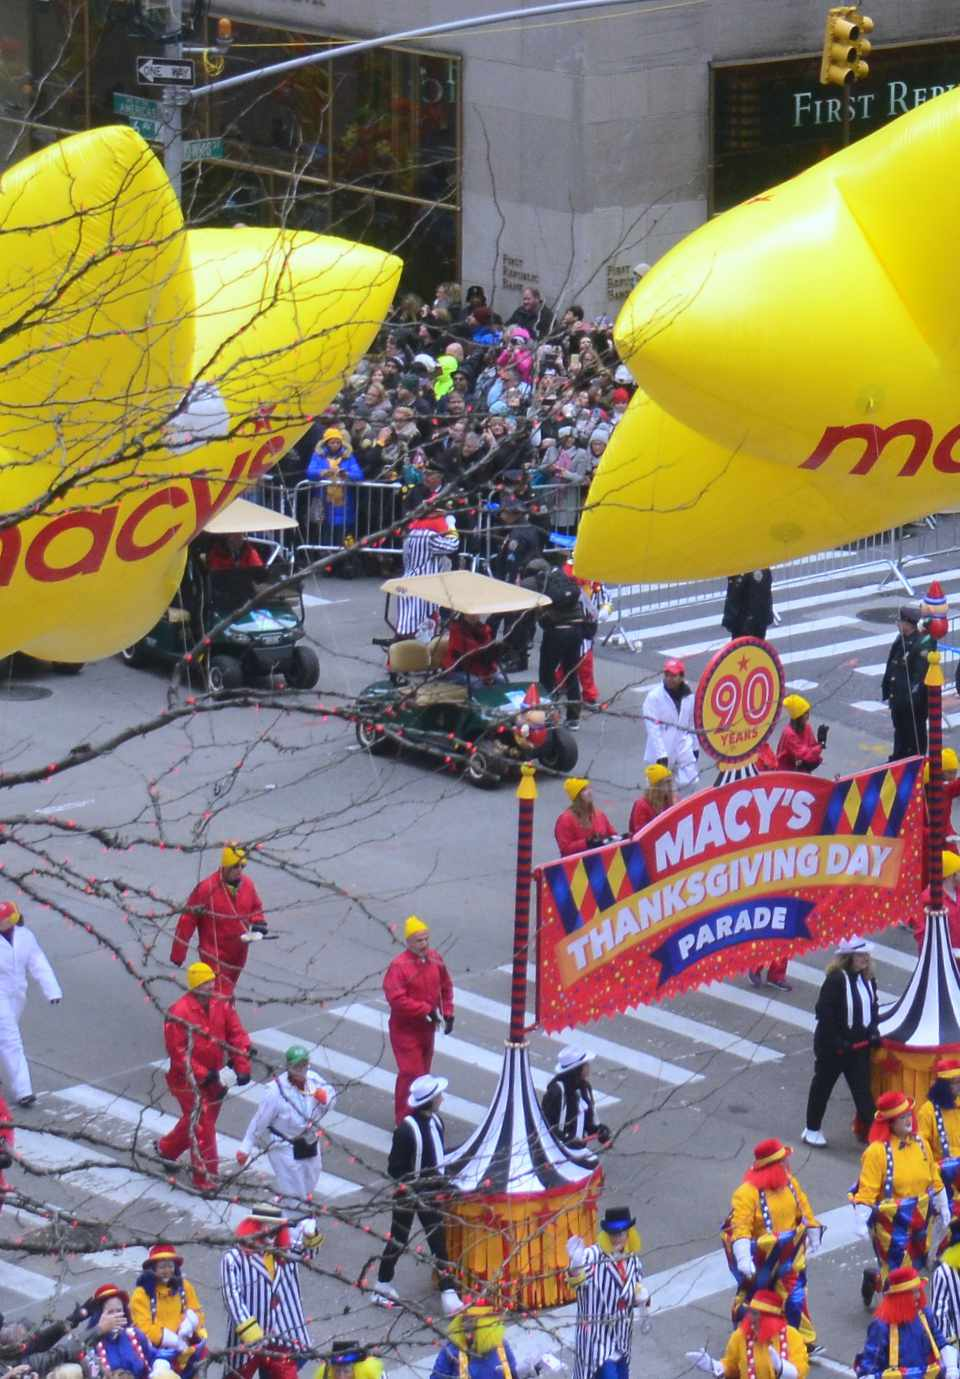 The Start of the Macy's Thanksgiving Day Parade